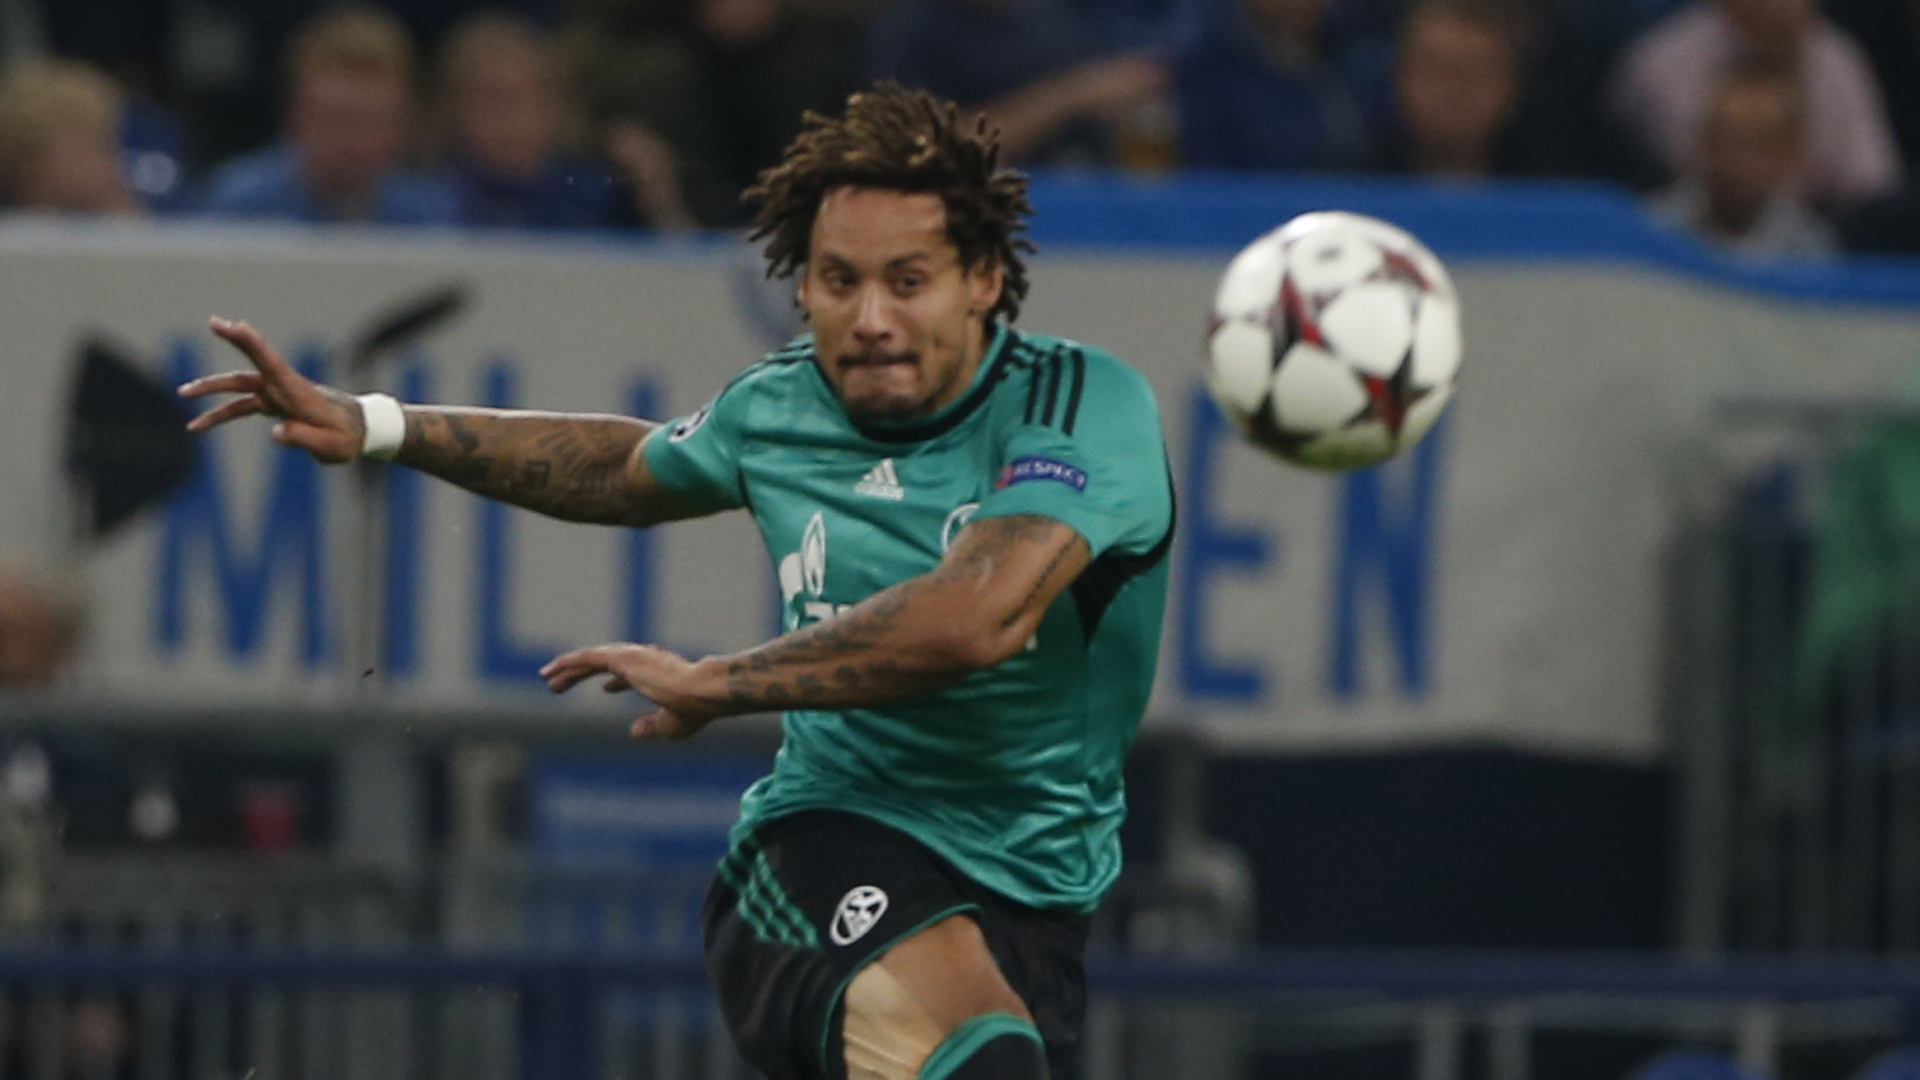 jermaine-jones-FTR-013014.jpg